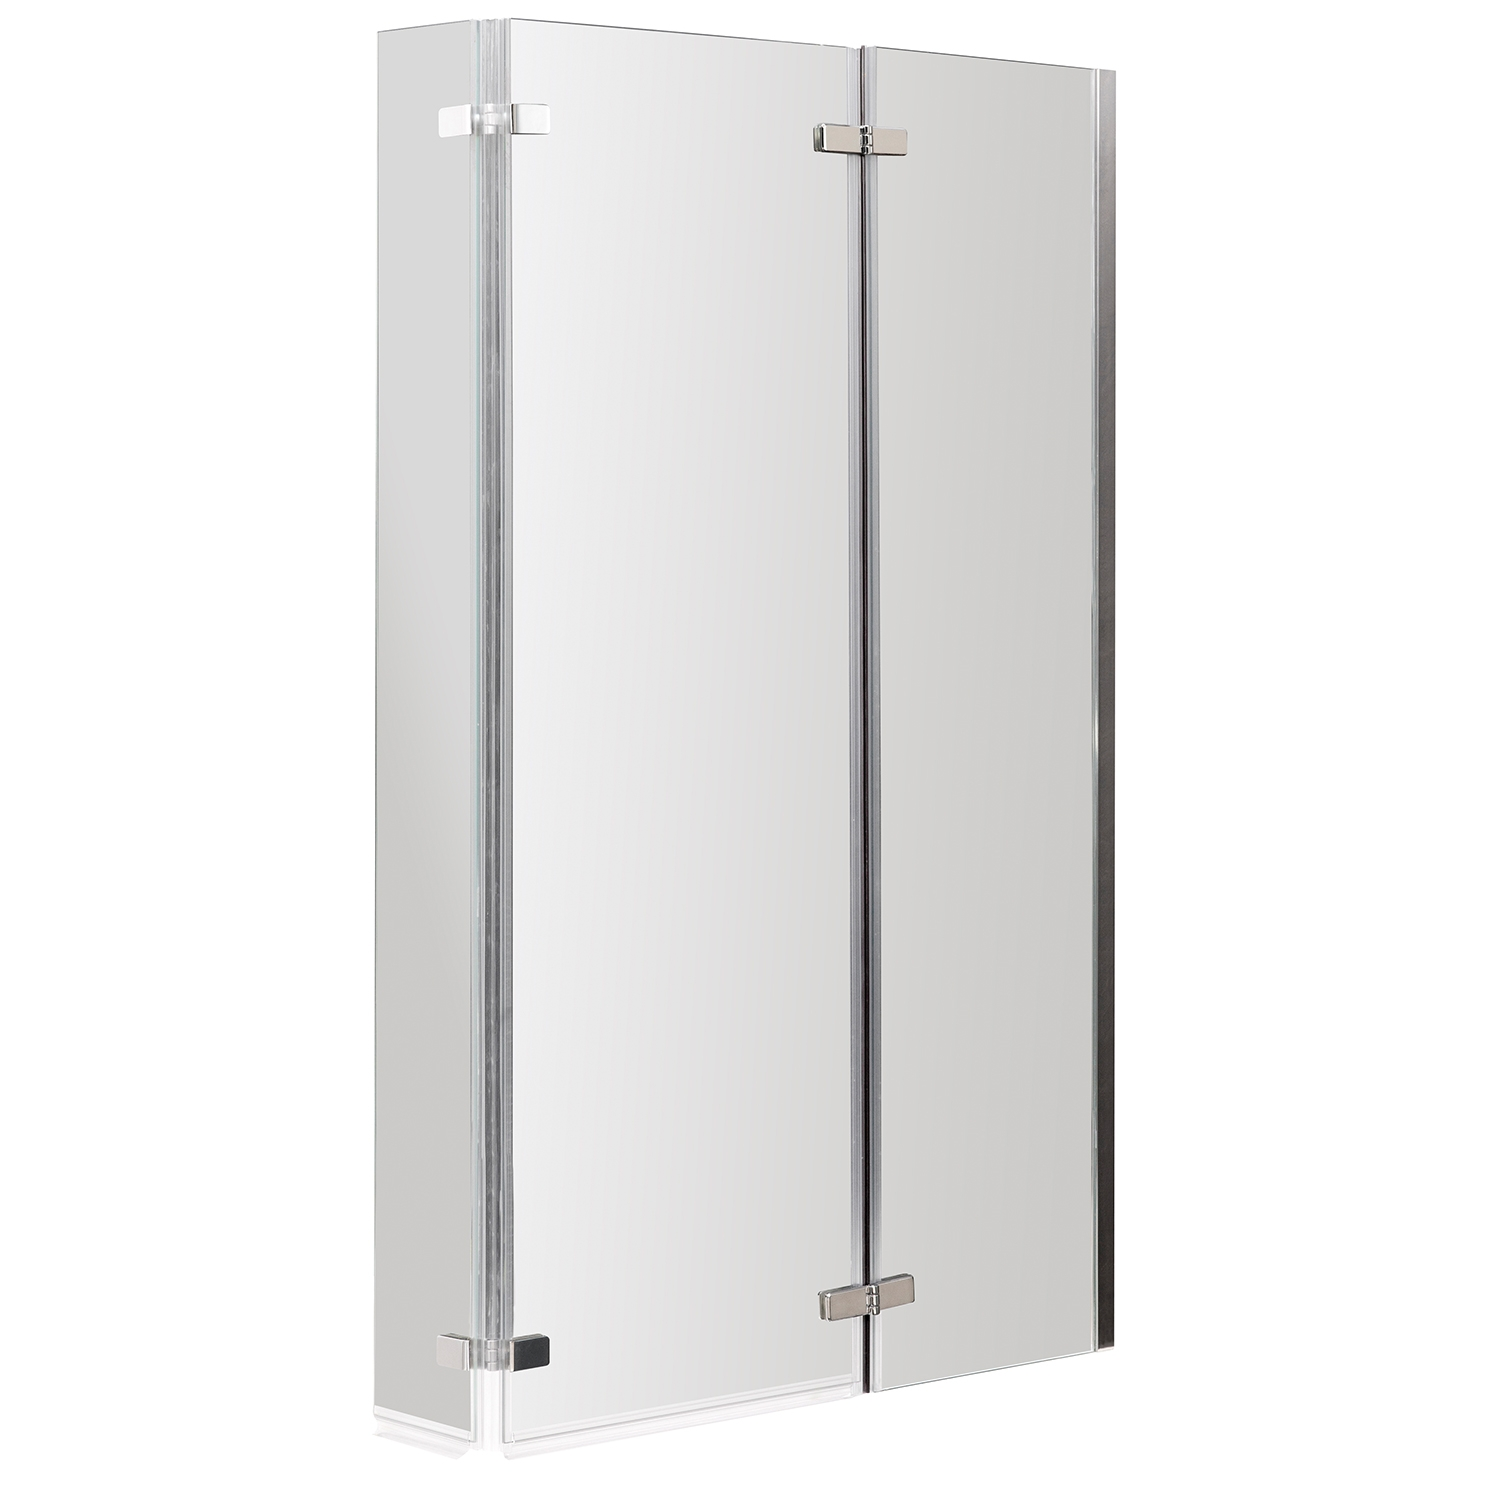 Premier Ella Bath Screen with Hinged End Panel 1400mm High